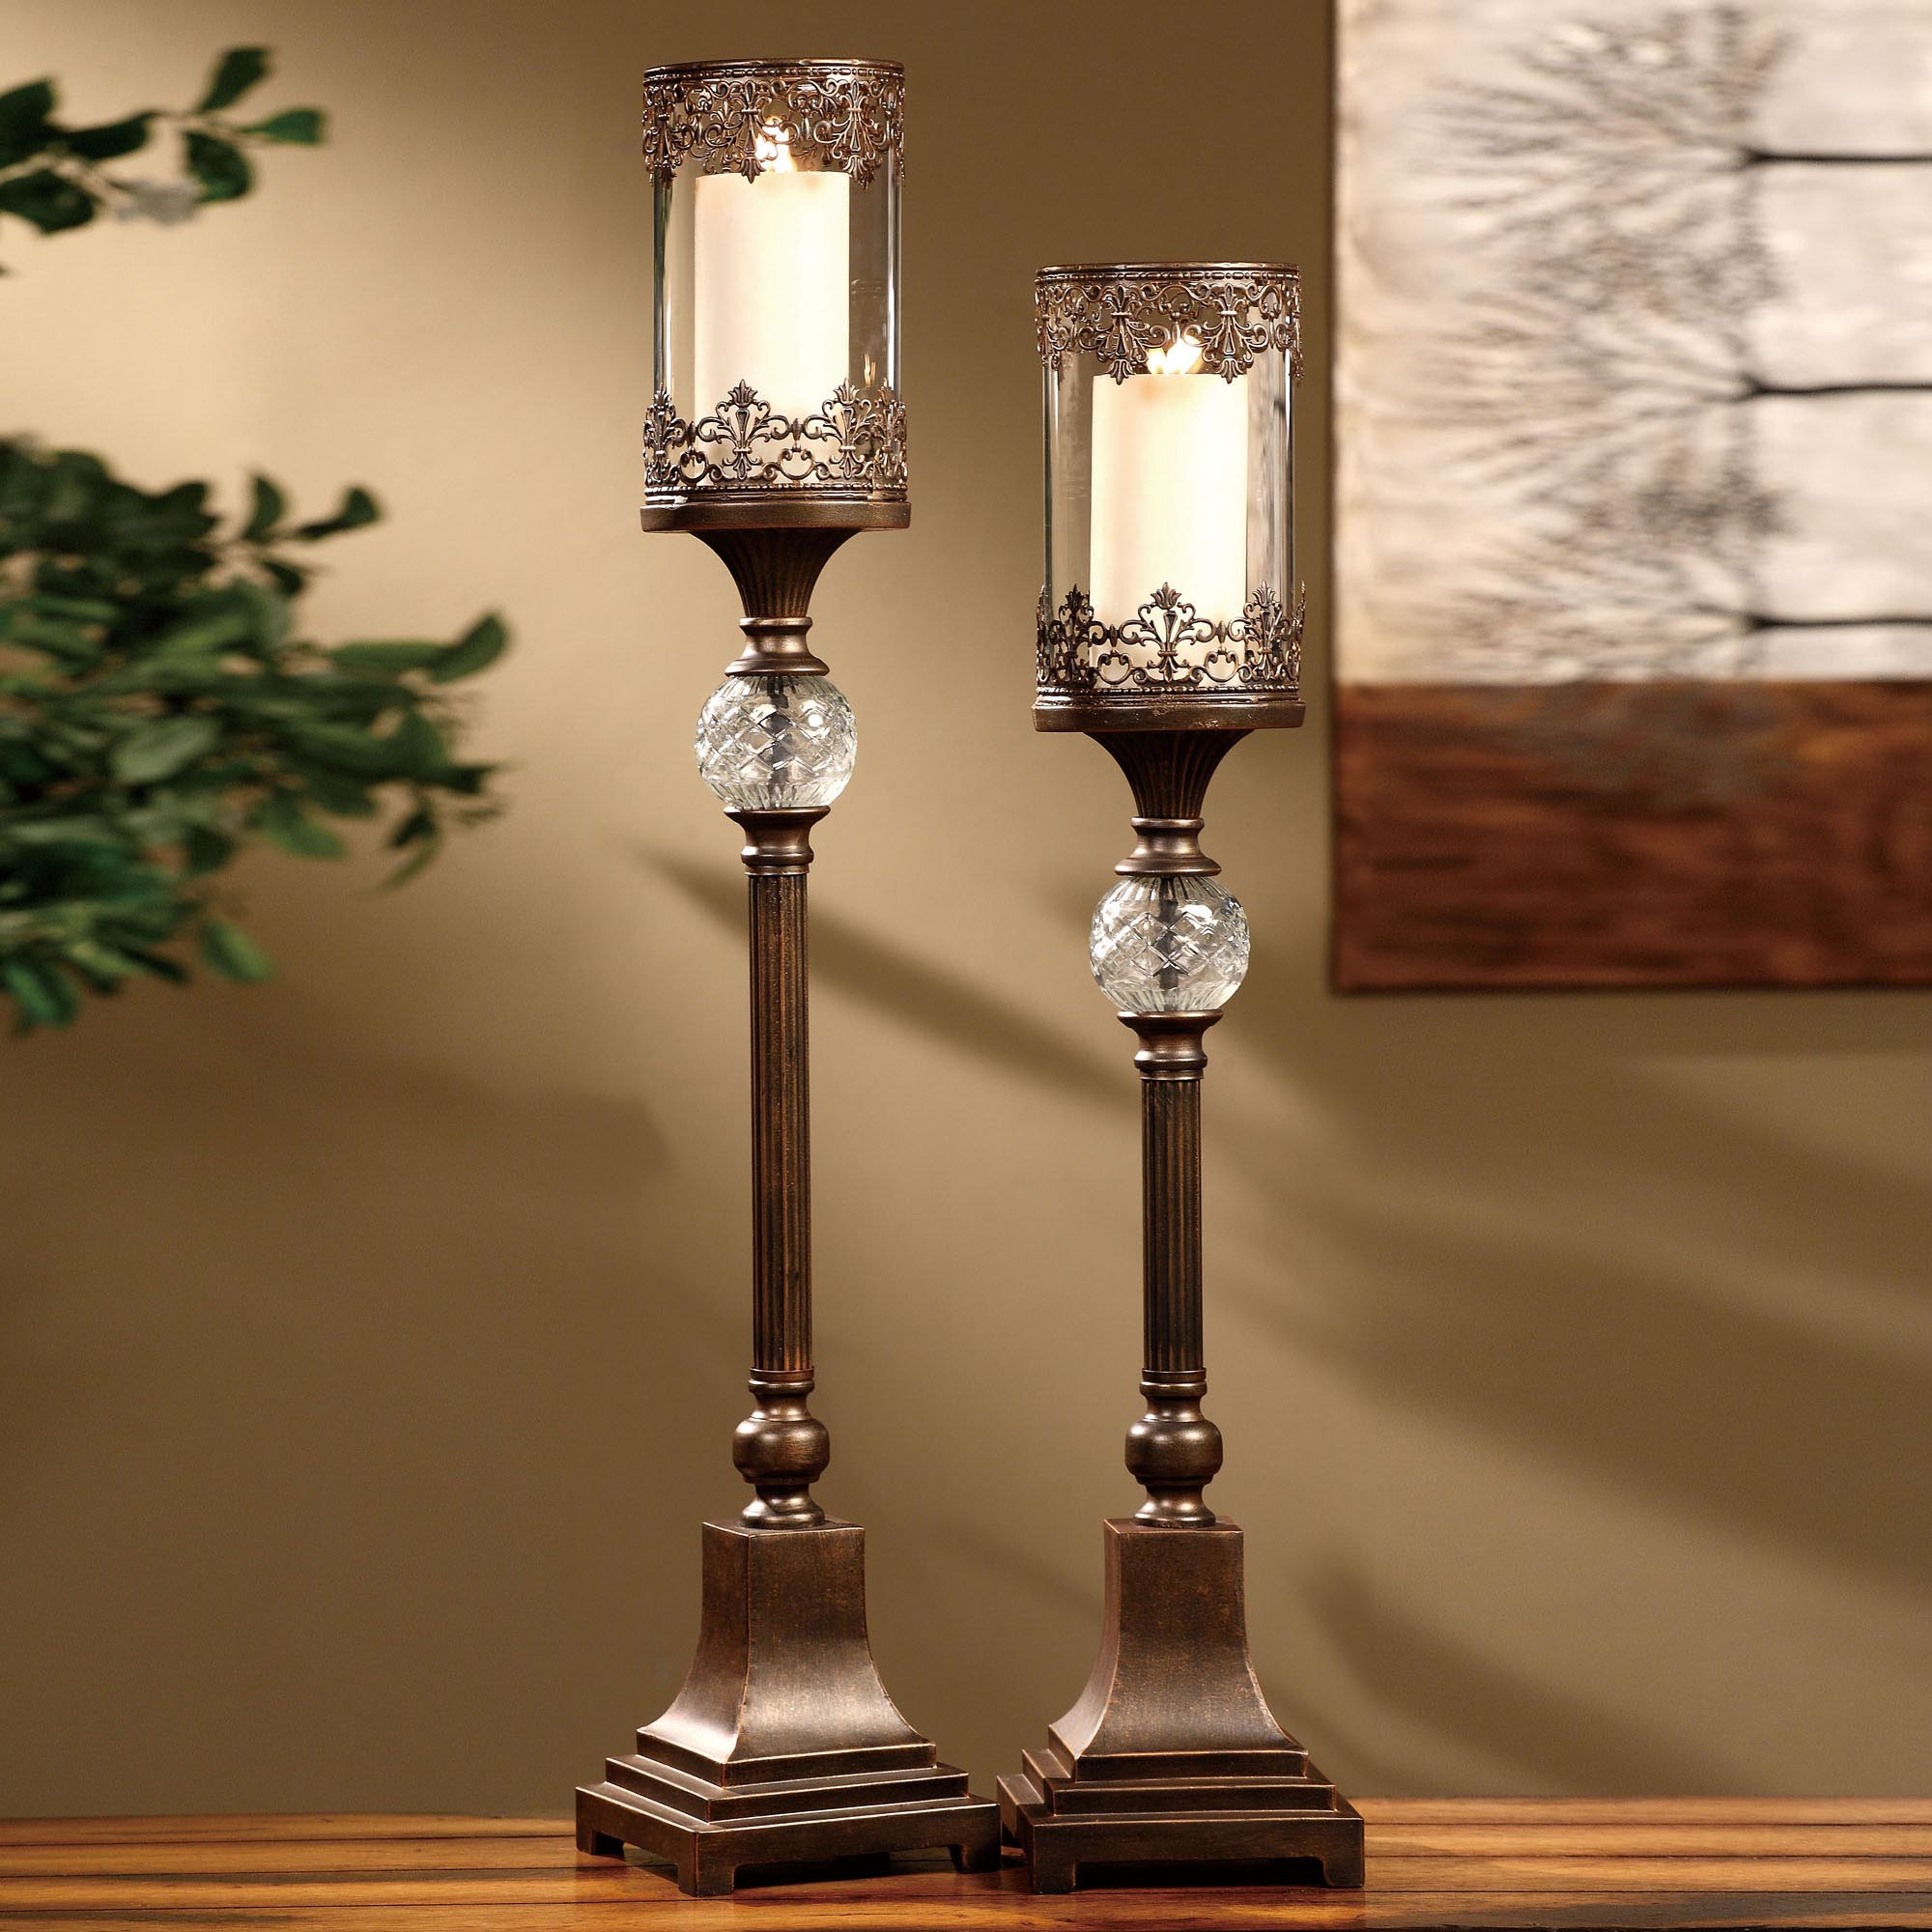 Pillar Hurricane Candle Holders